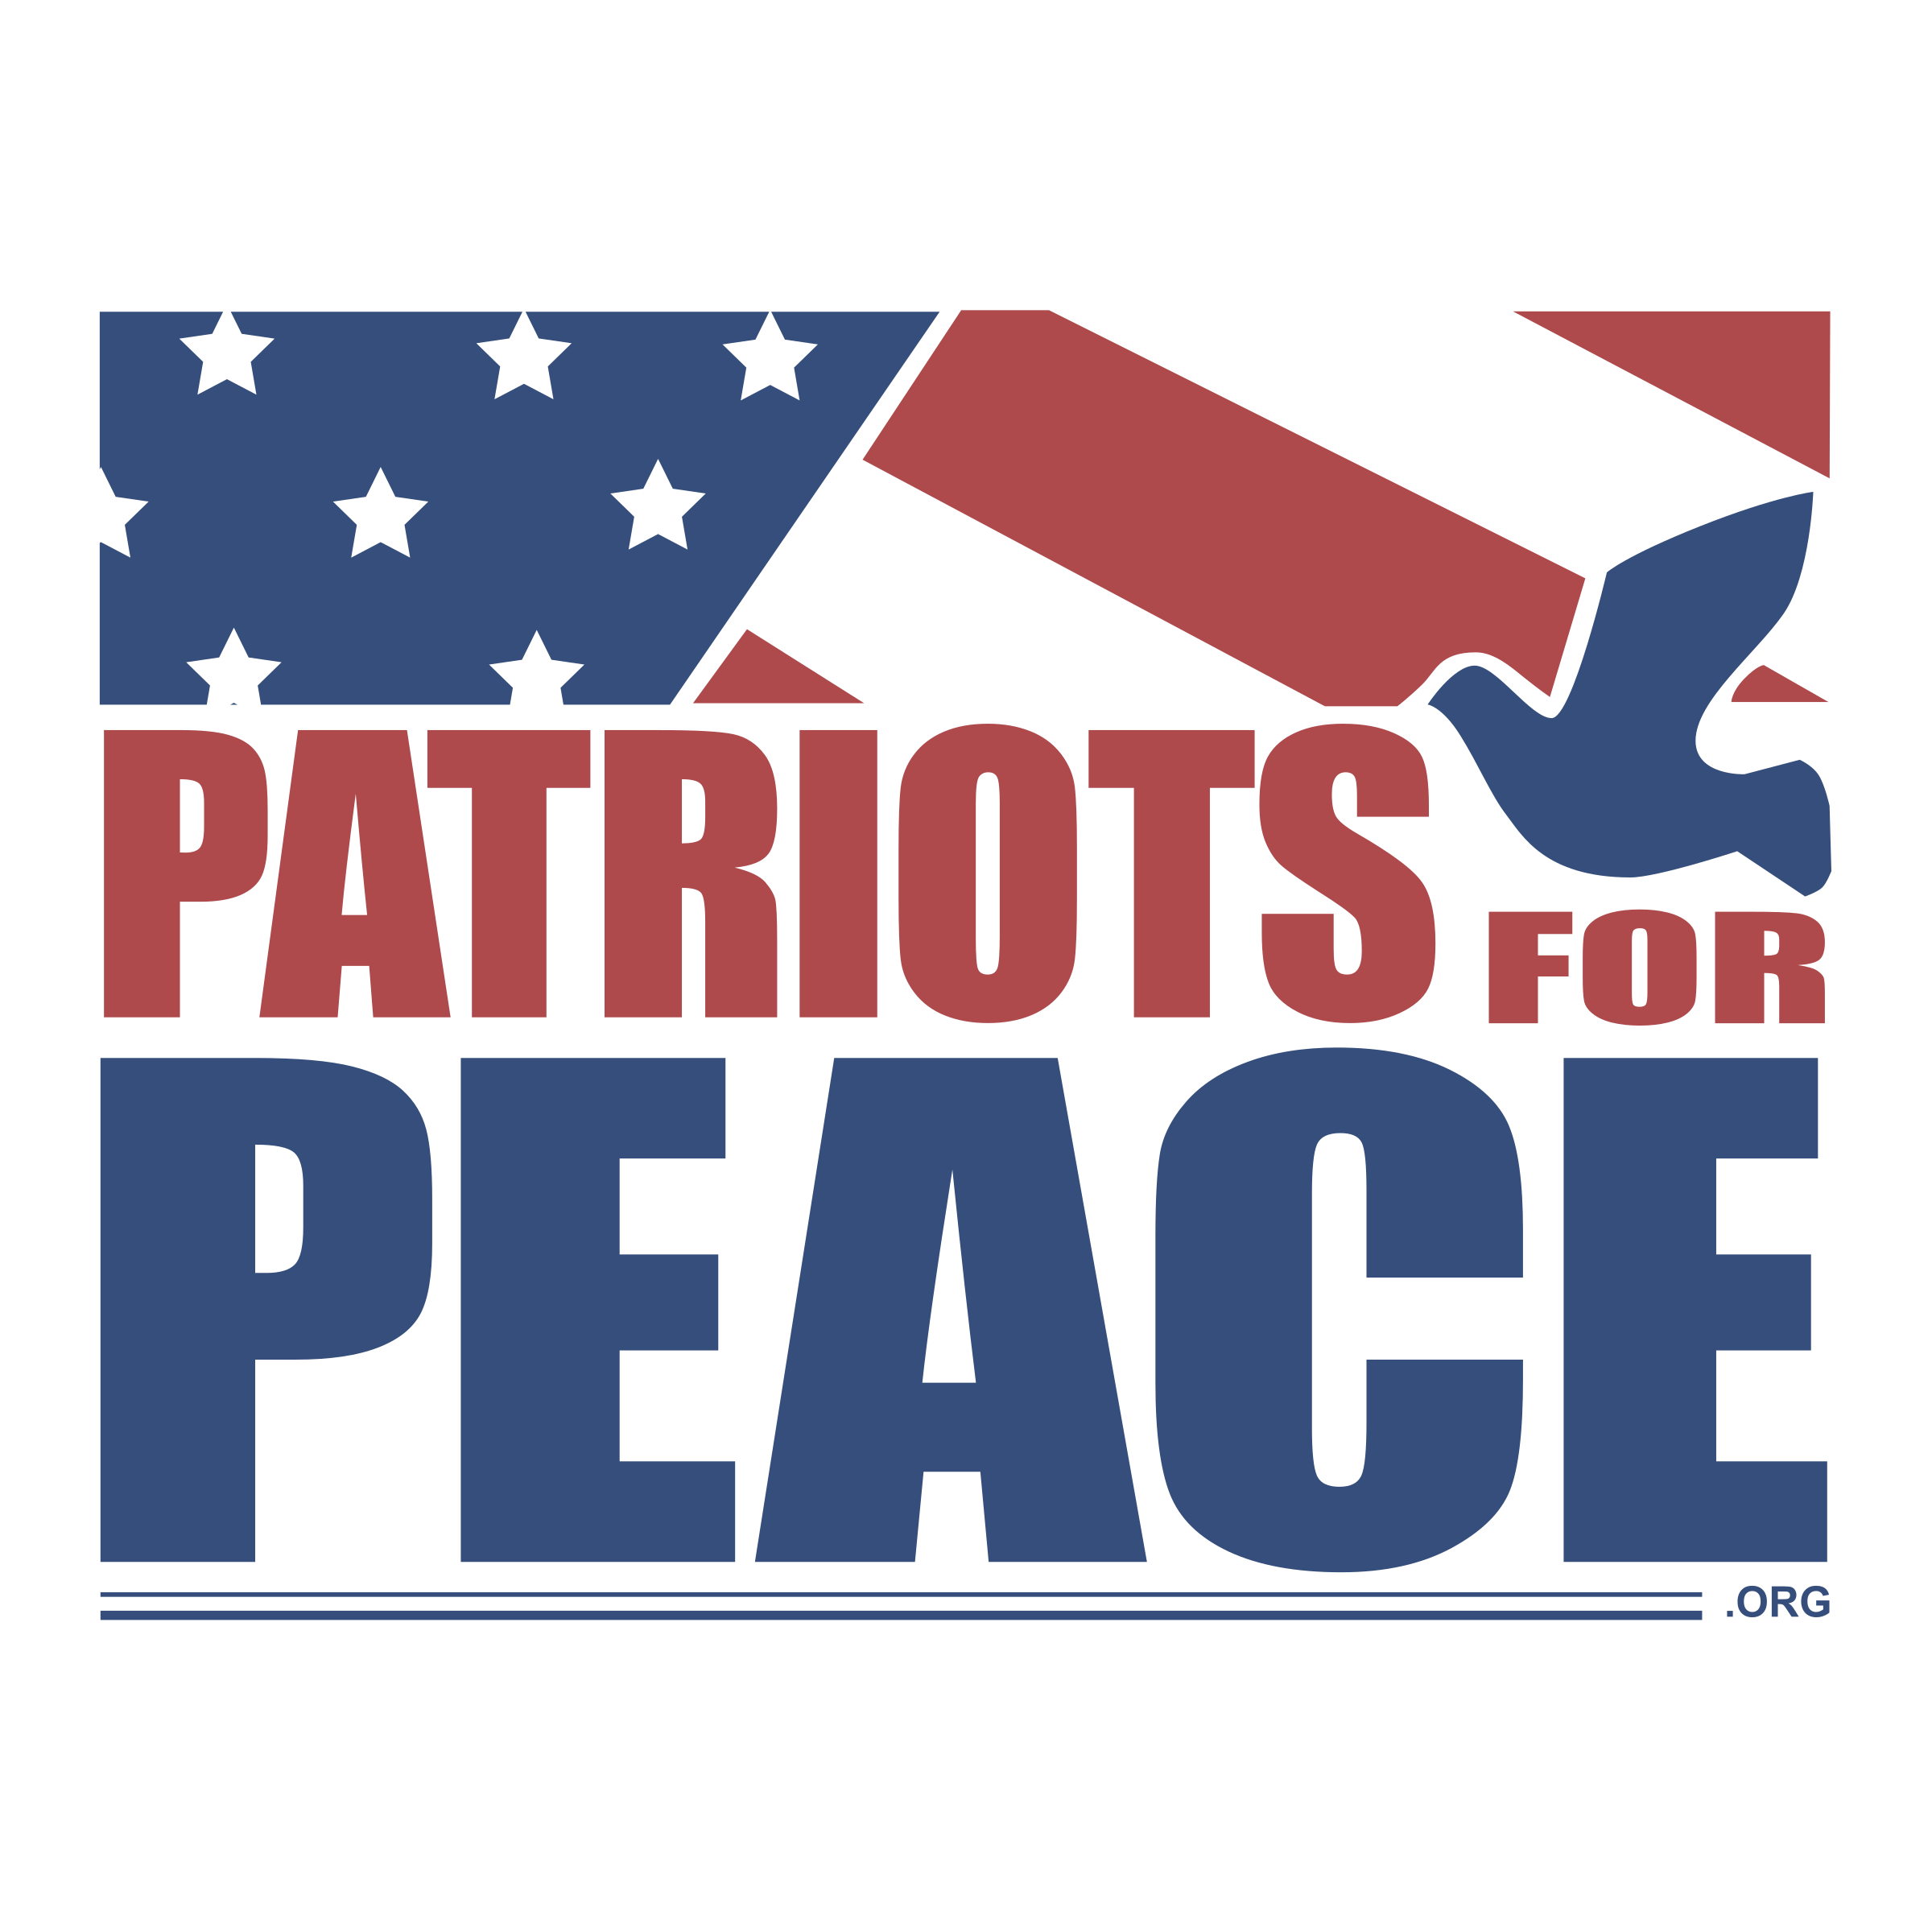 Patriots day logo png. For peace transparent svg